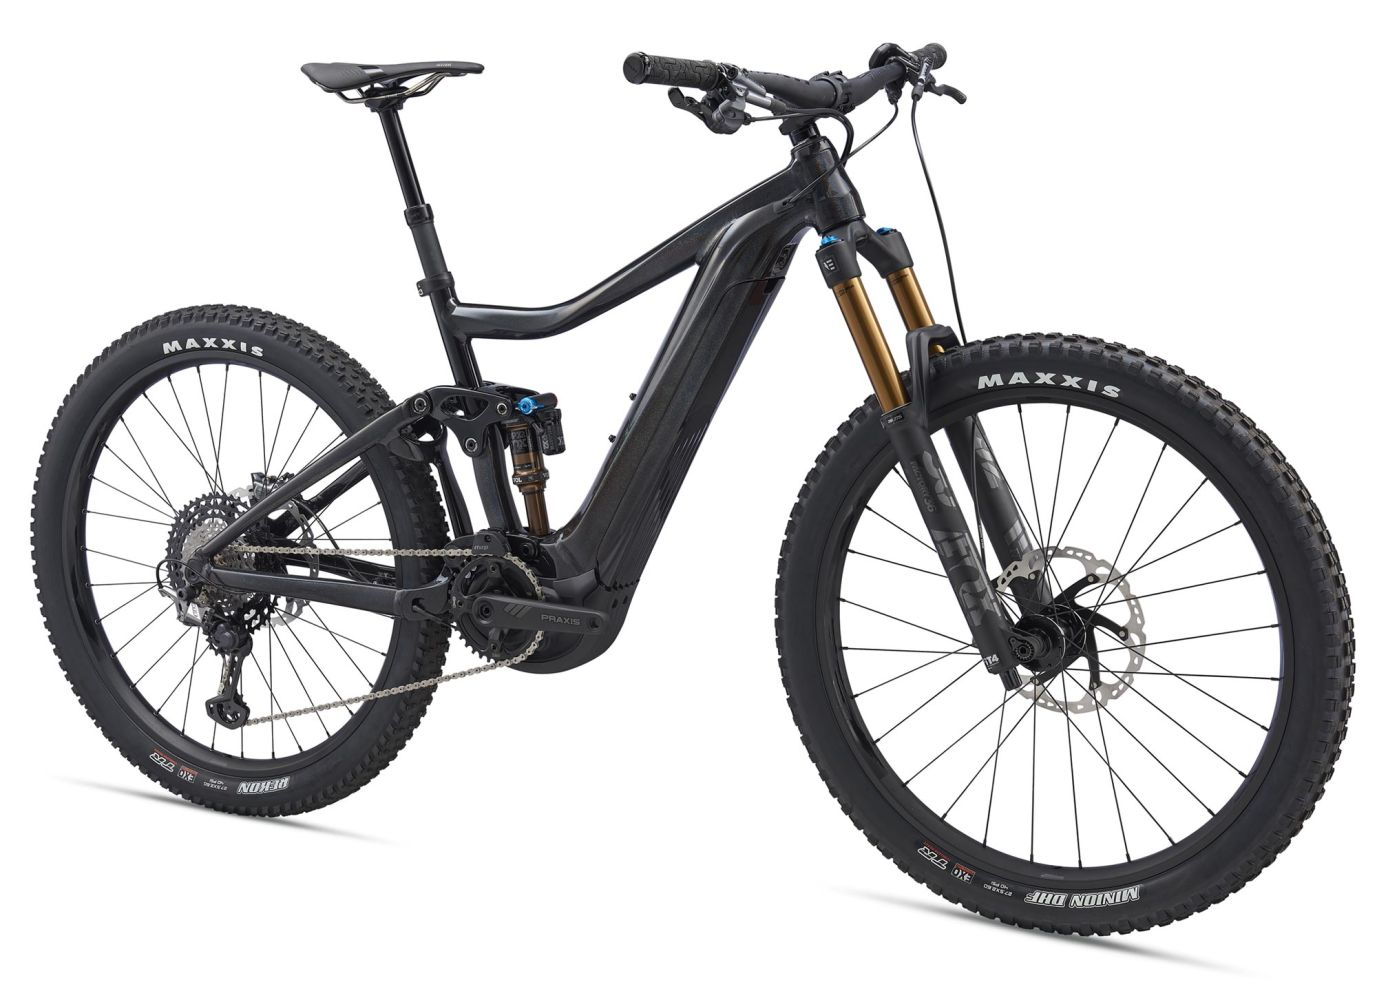 2019 trance e pro giant bicycles official site. Black Bedroom Furniture Sets. Home Design Ideas